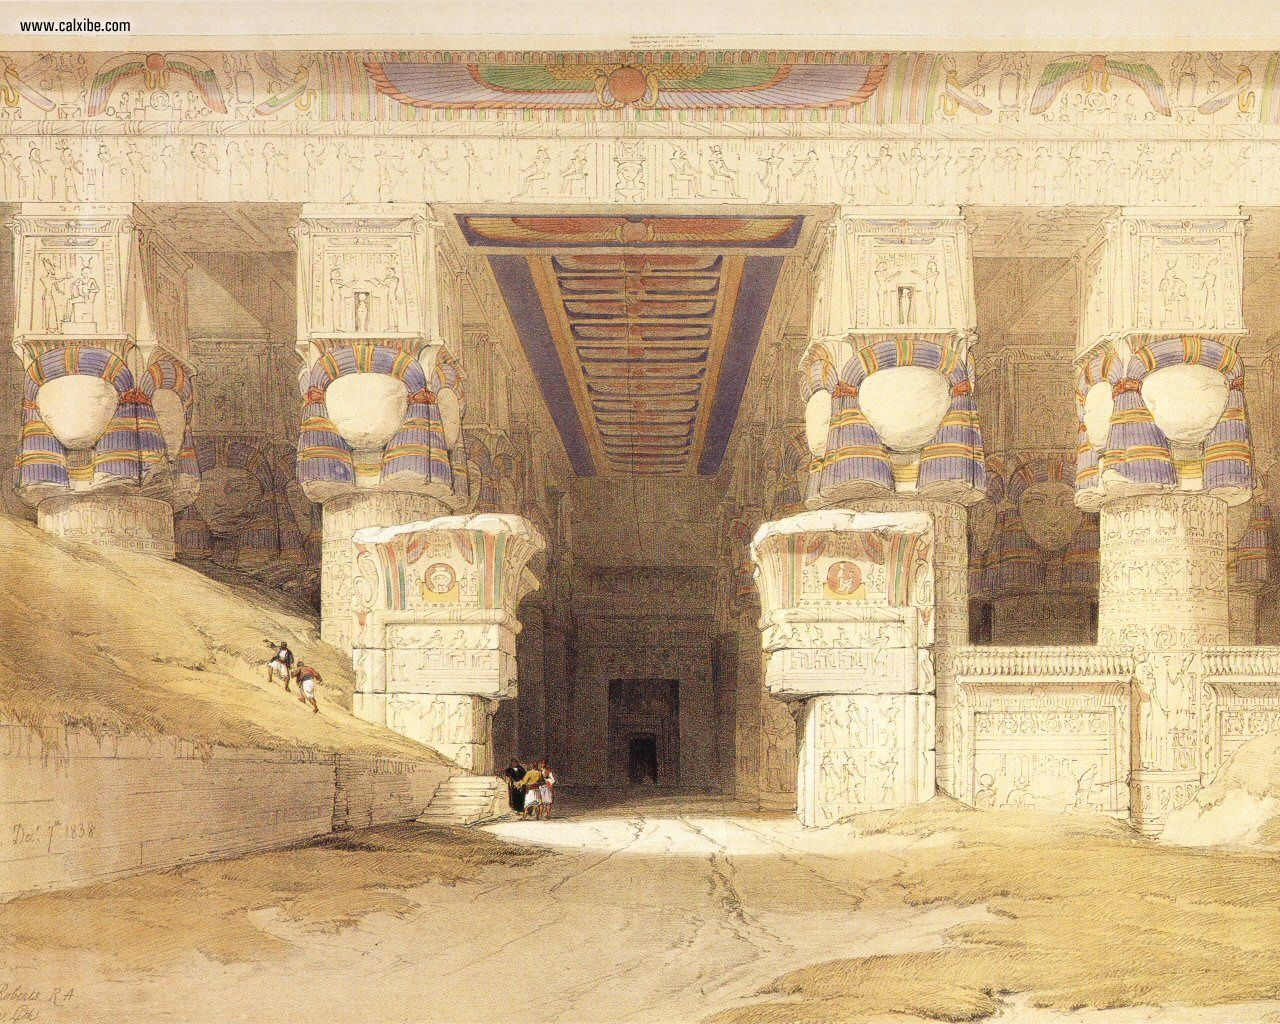 David Roberts pg06 The Facade Of The Temple Of Hathor At Dendera